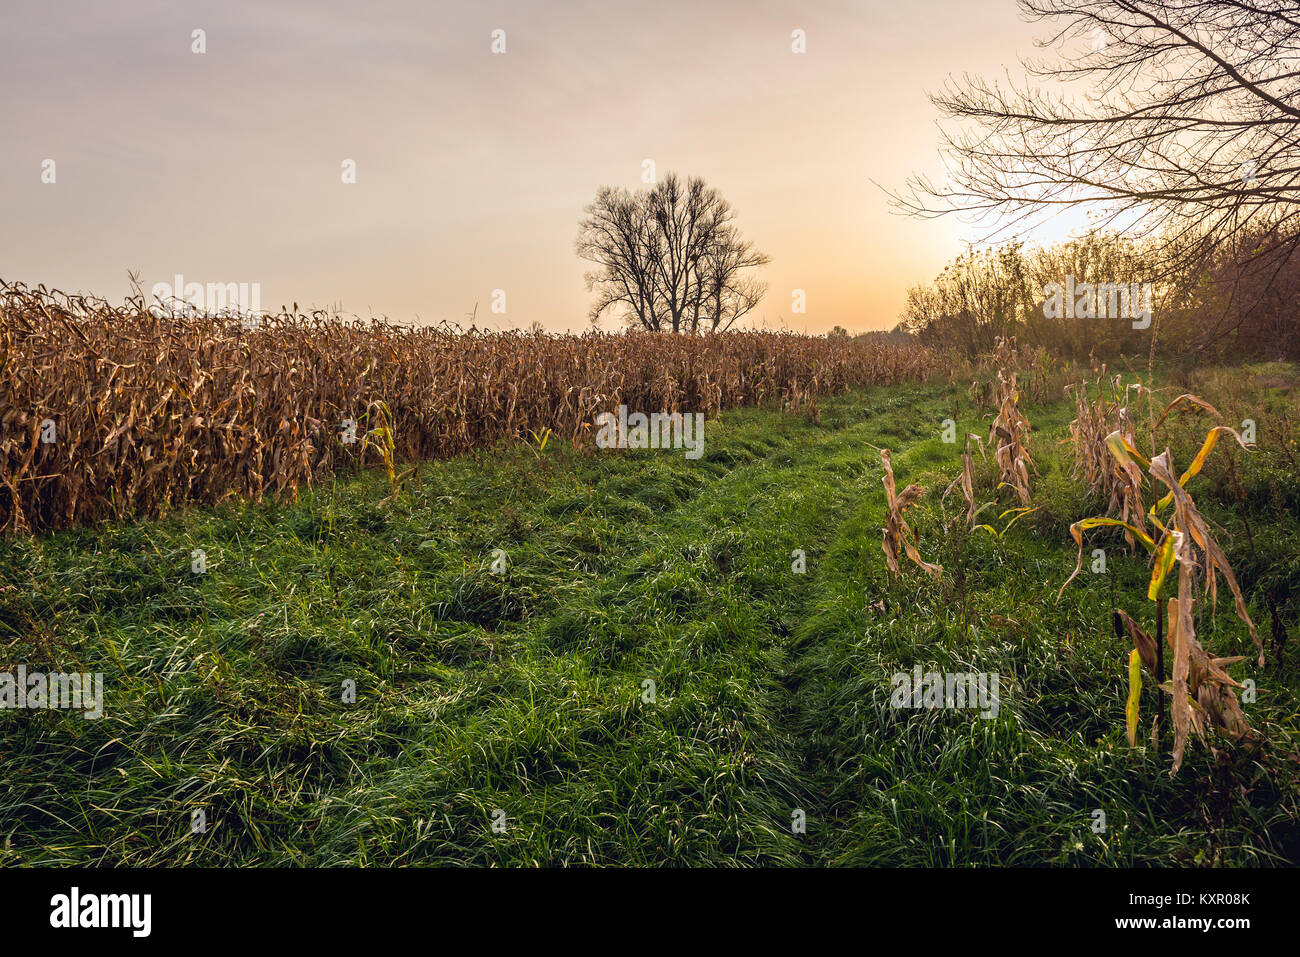 Corn fields in Witkowice village, Sochaczew County in Masovian Voivodeship of Poland - Stock Image